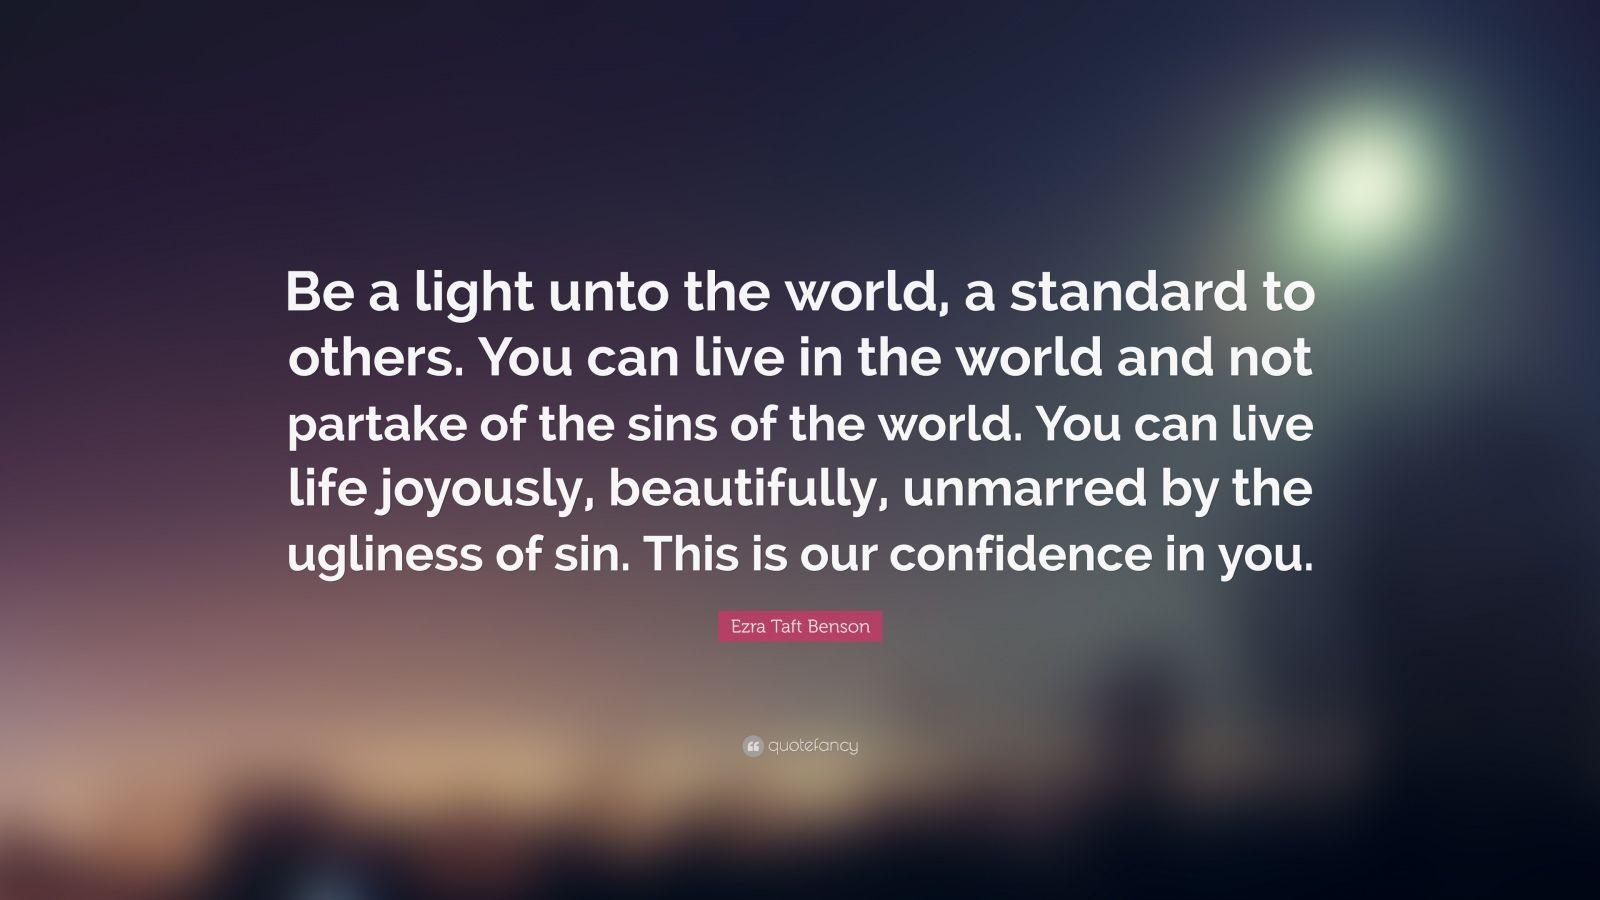 """Ezra Taft Benson Quote: """"Be a light unto the world, a standard to others. You can live in the world and not partake of the sins of the world. You can live life joyously, beautifully, unmarred by the ugliness of sin. This is our confidence in you."""""""